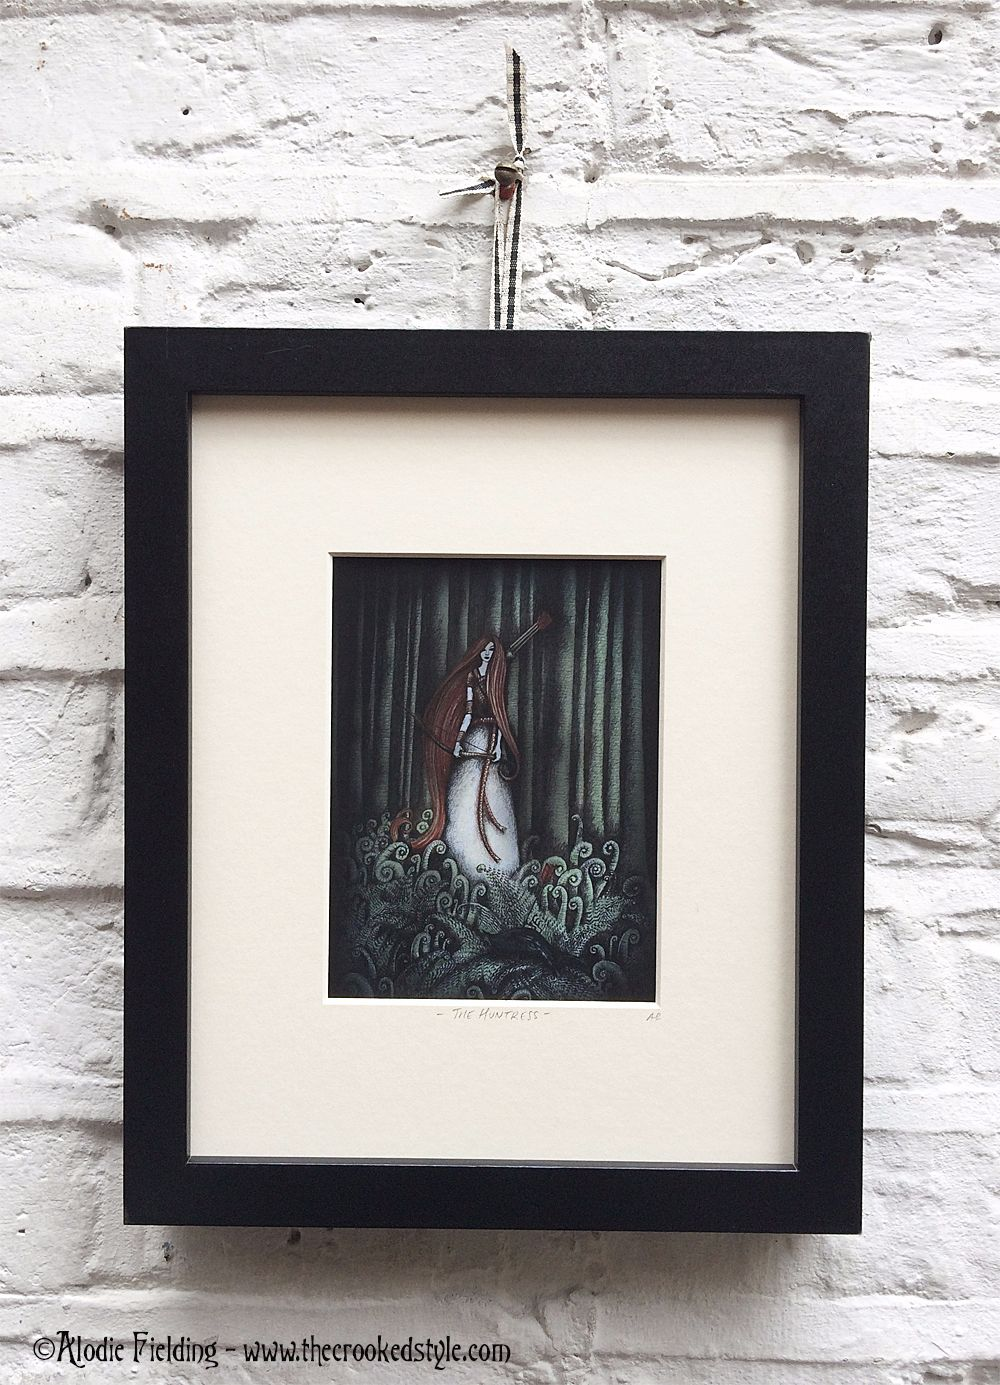 THE HUNTRESS - LIMITED EDITION GICLEE PRINT